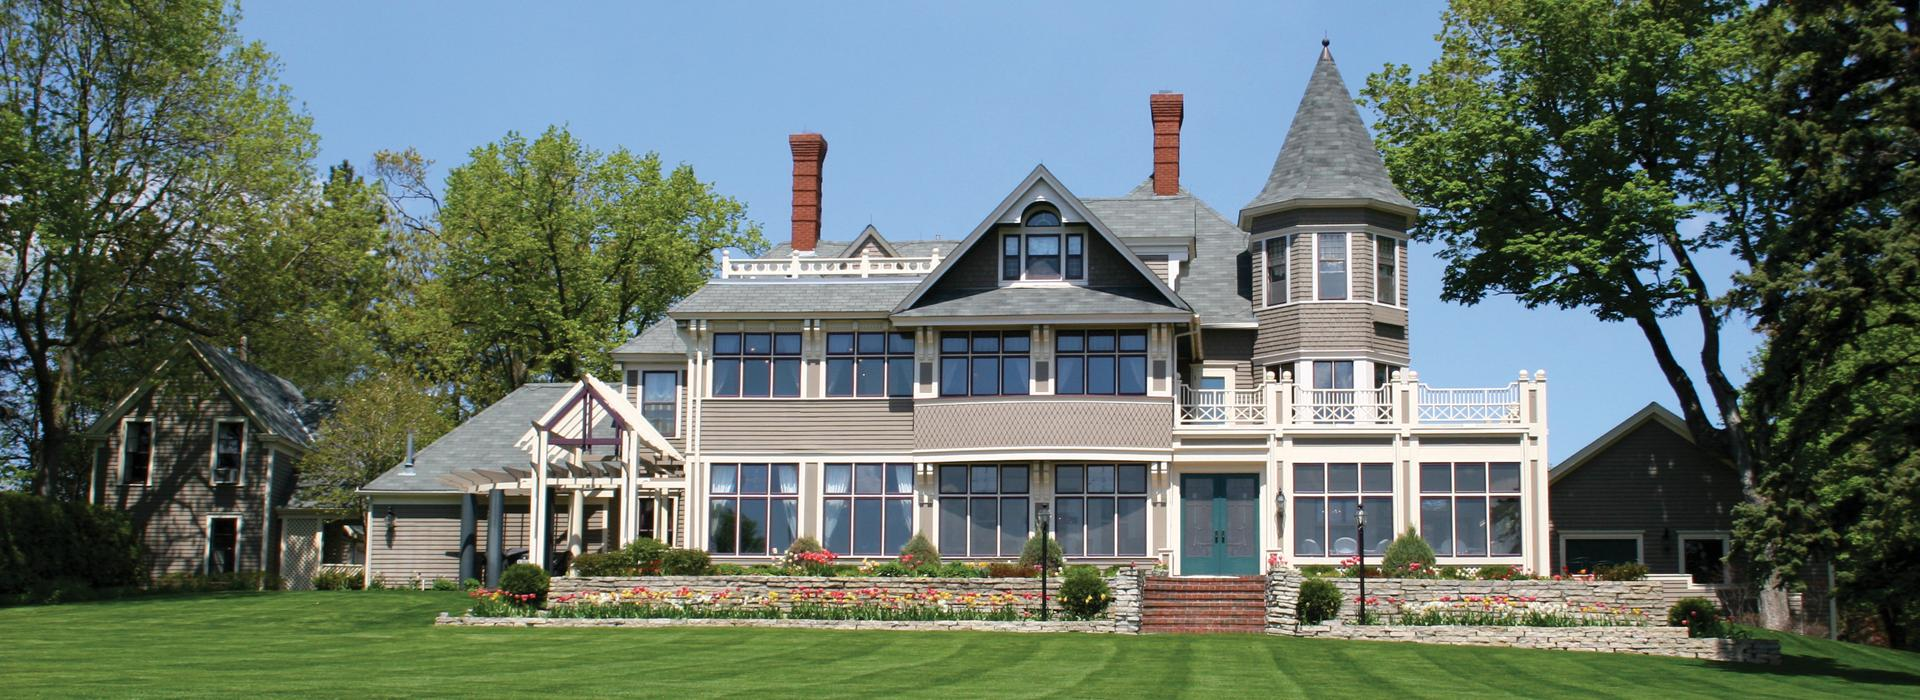 Colonial home with grey exterior, large windows, and manicured lawn with flowers